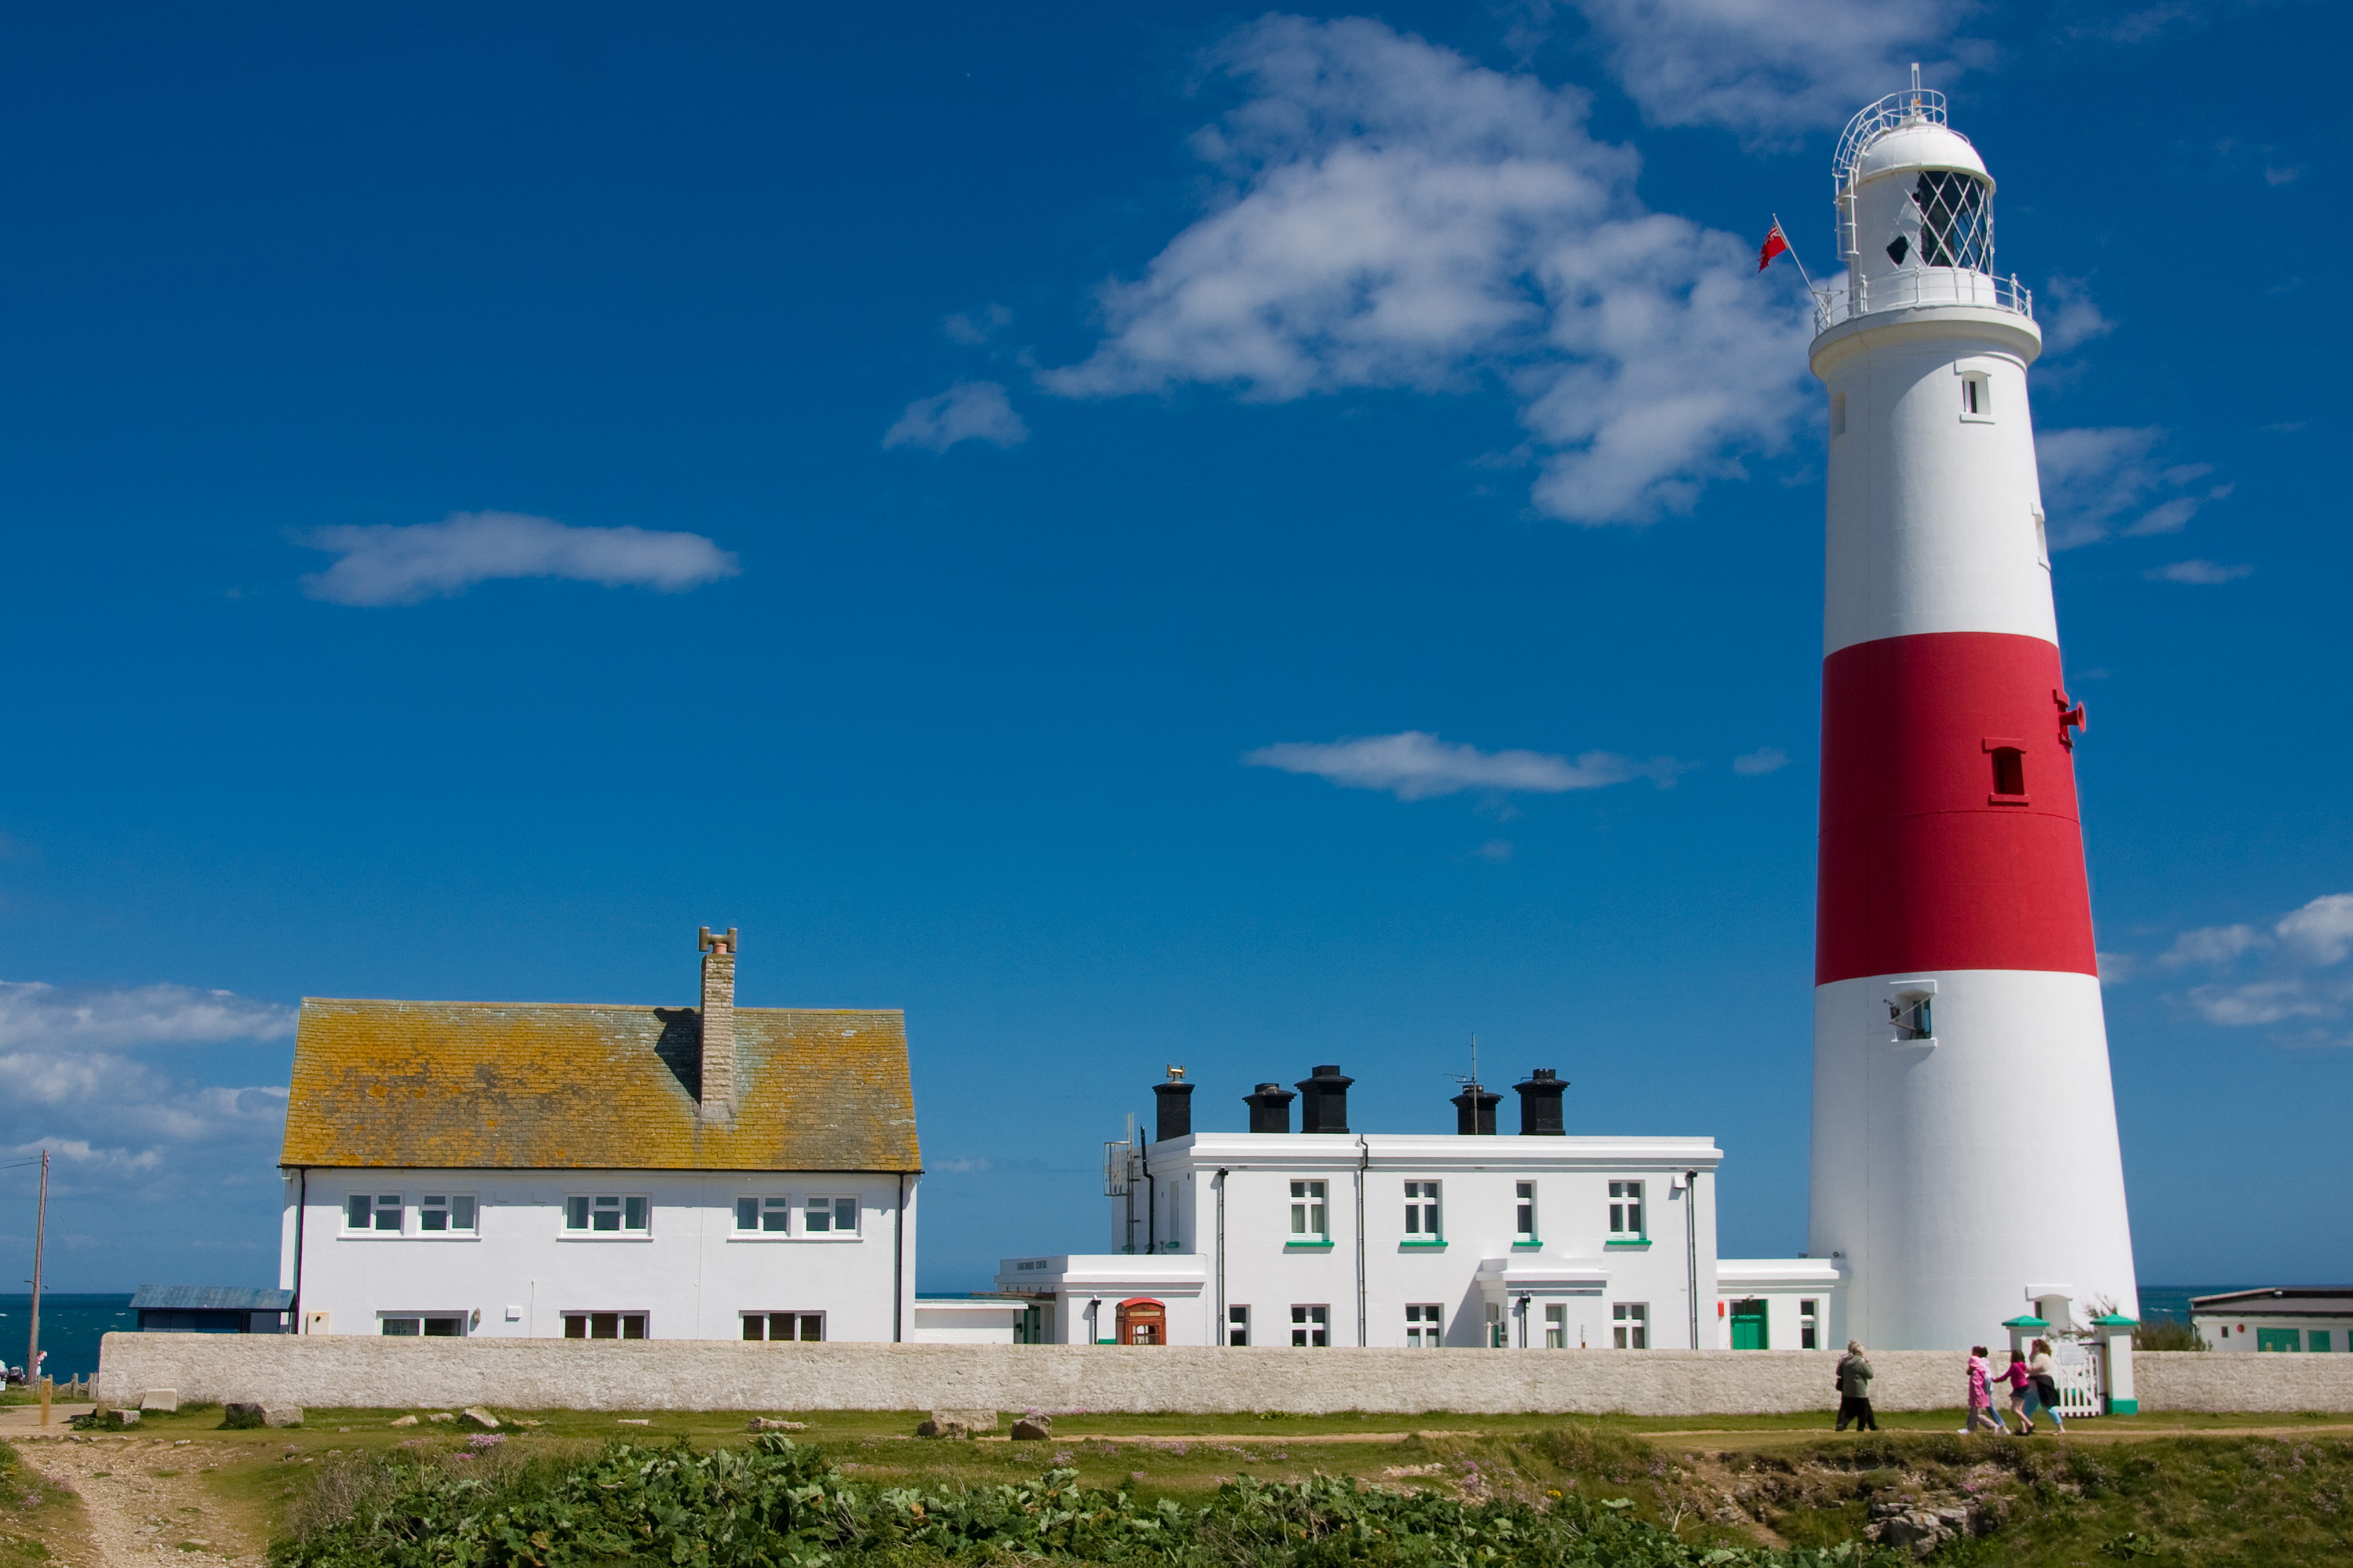 Portland Bill Lighthouse and Buildings by Paul Tomlin licensed under CC BY 2.0